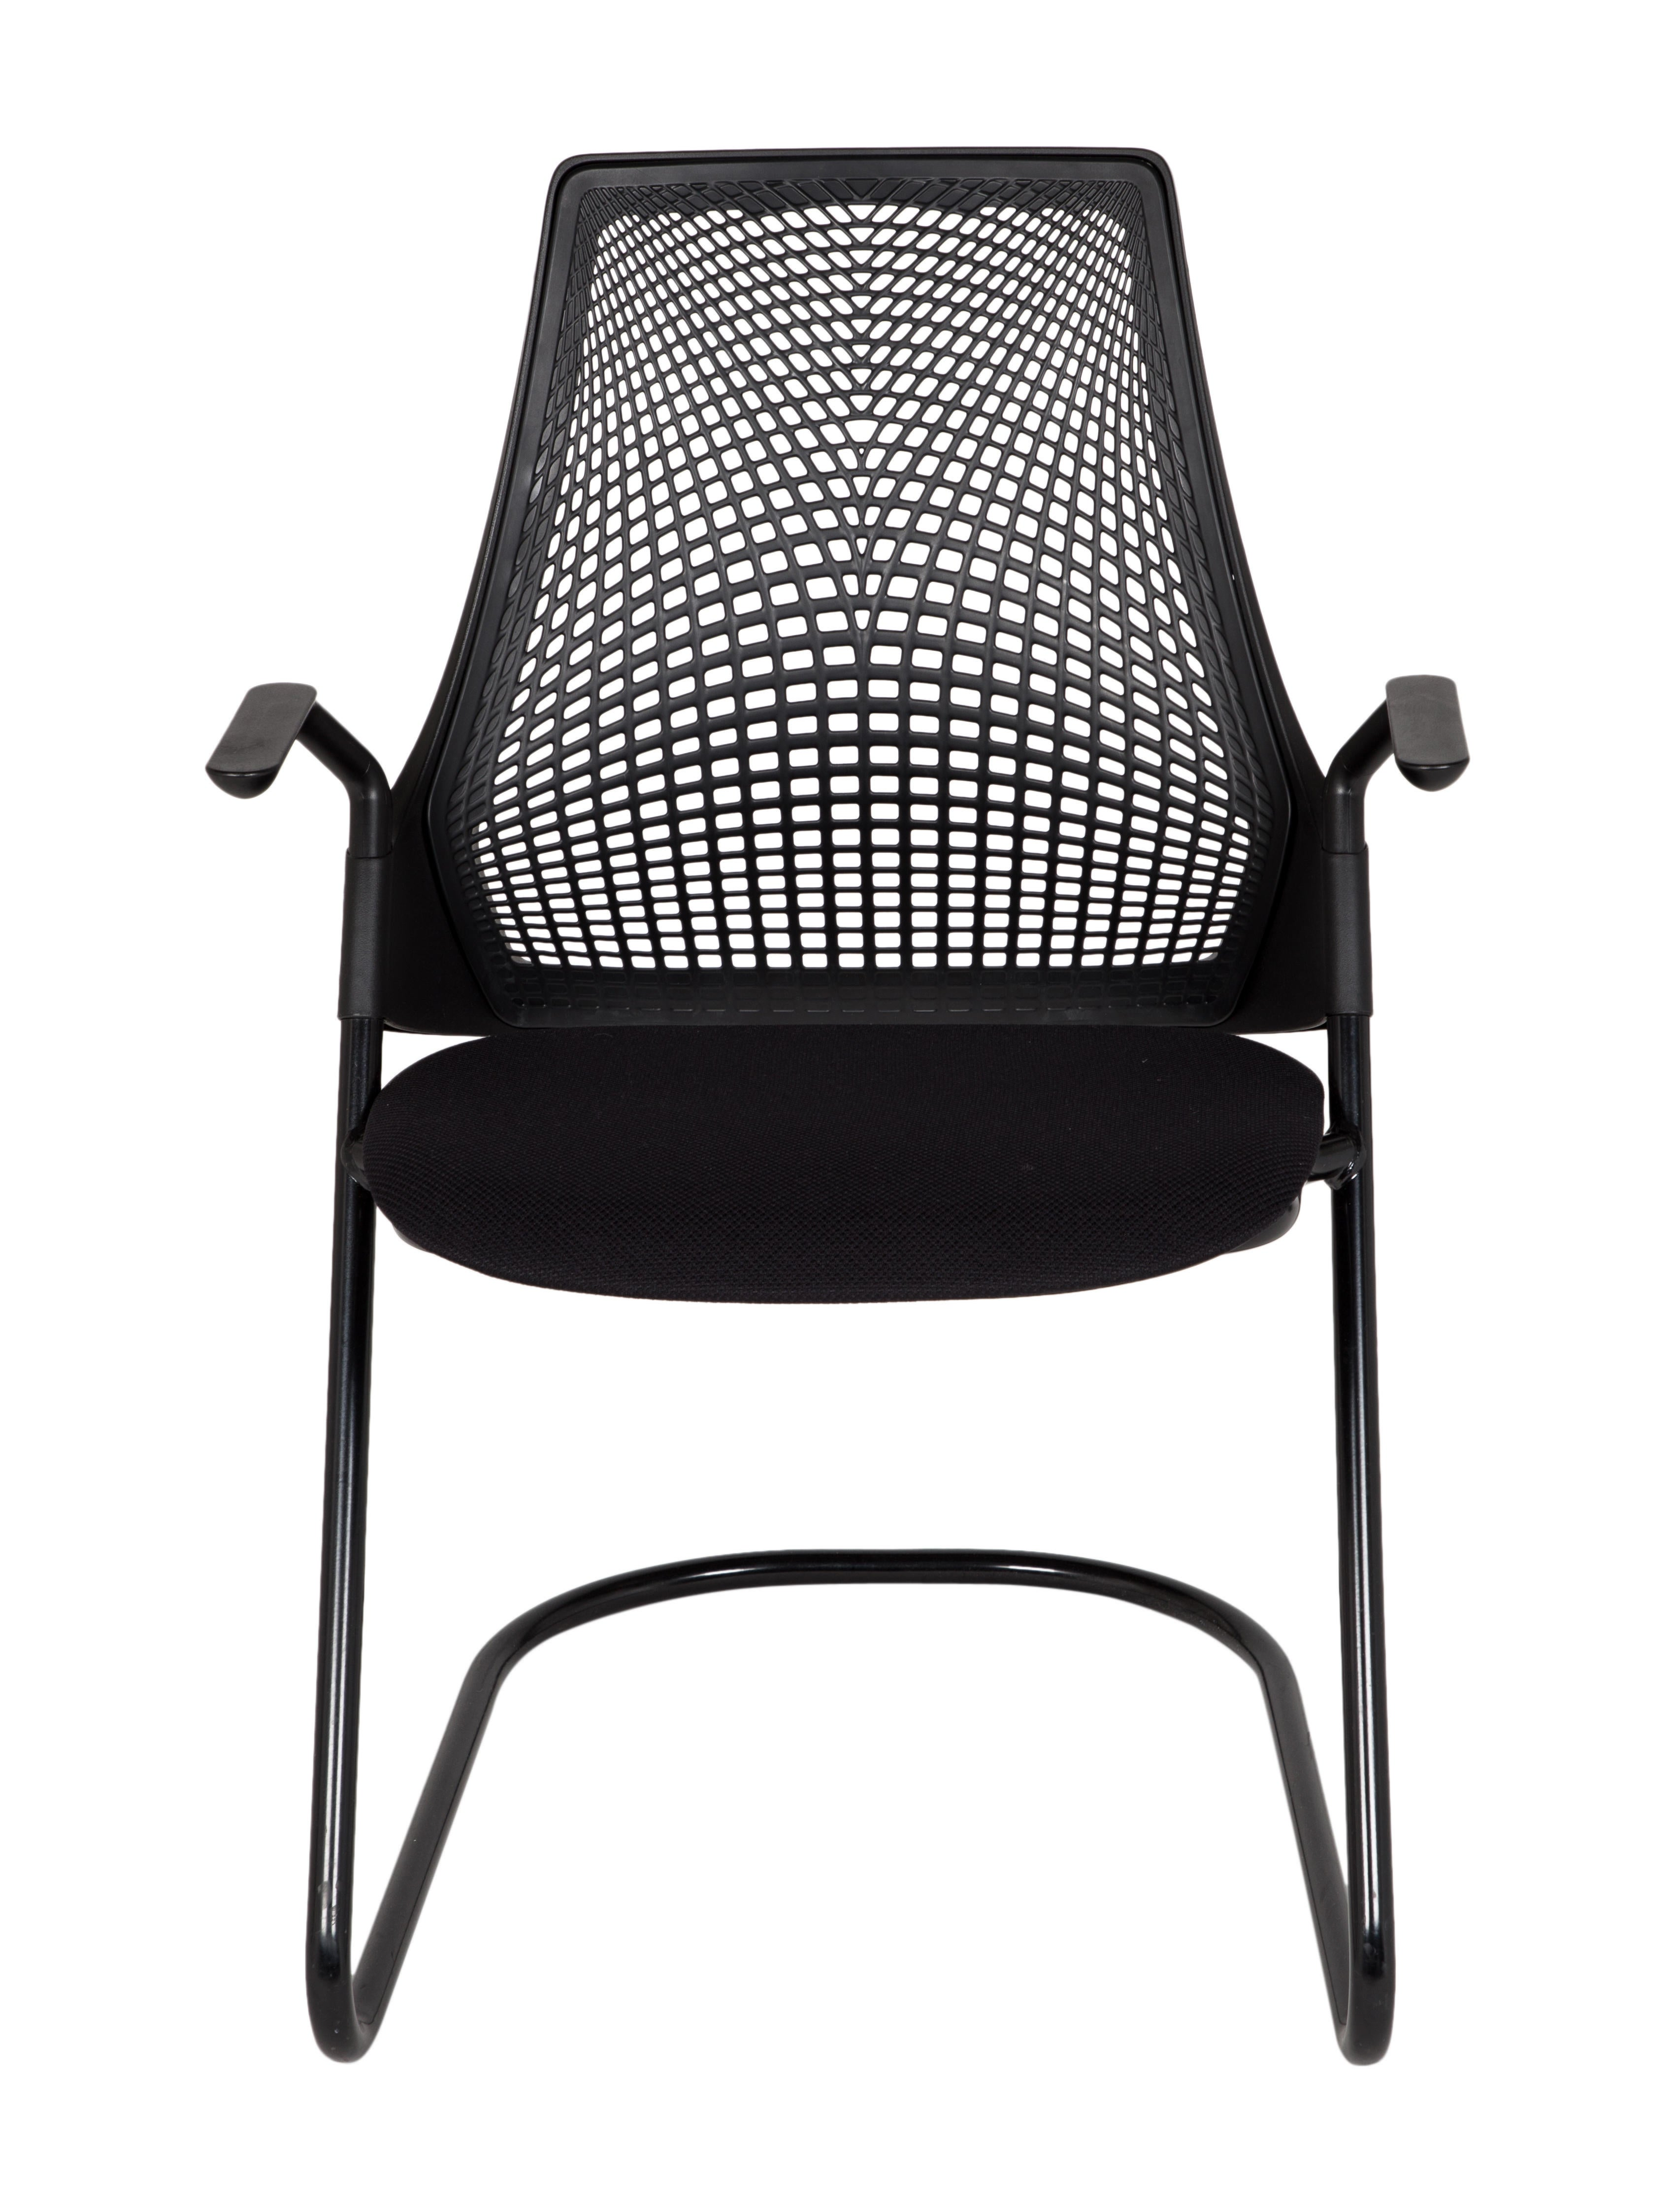 Sayl Side Chair  sc 1 st  The RealReal & Herman Miller Sayl Side Chair - Furniture - HRMIL20213 | The RealReal